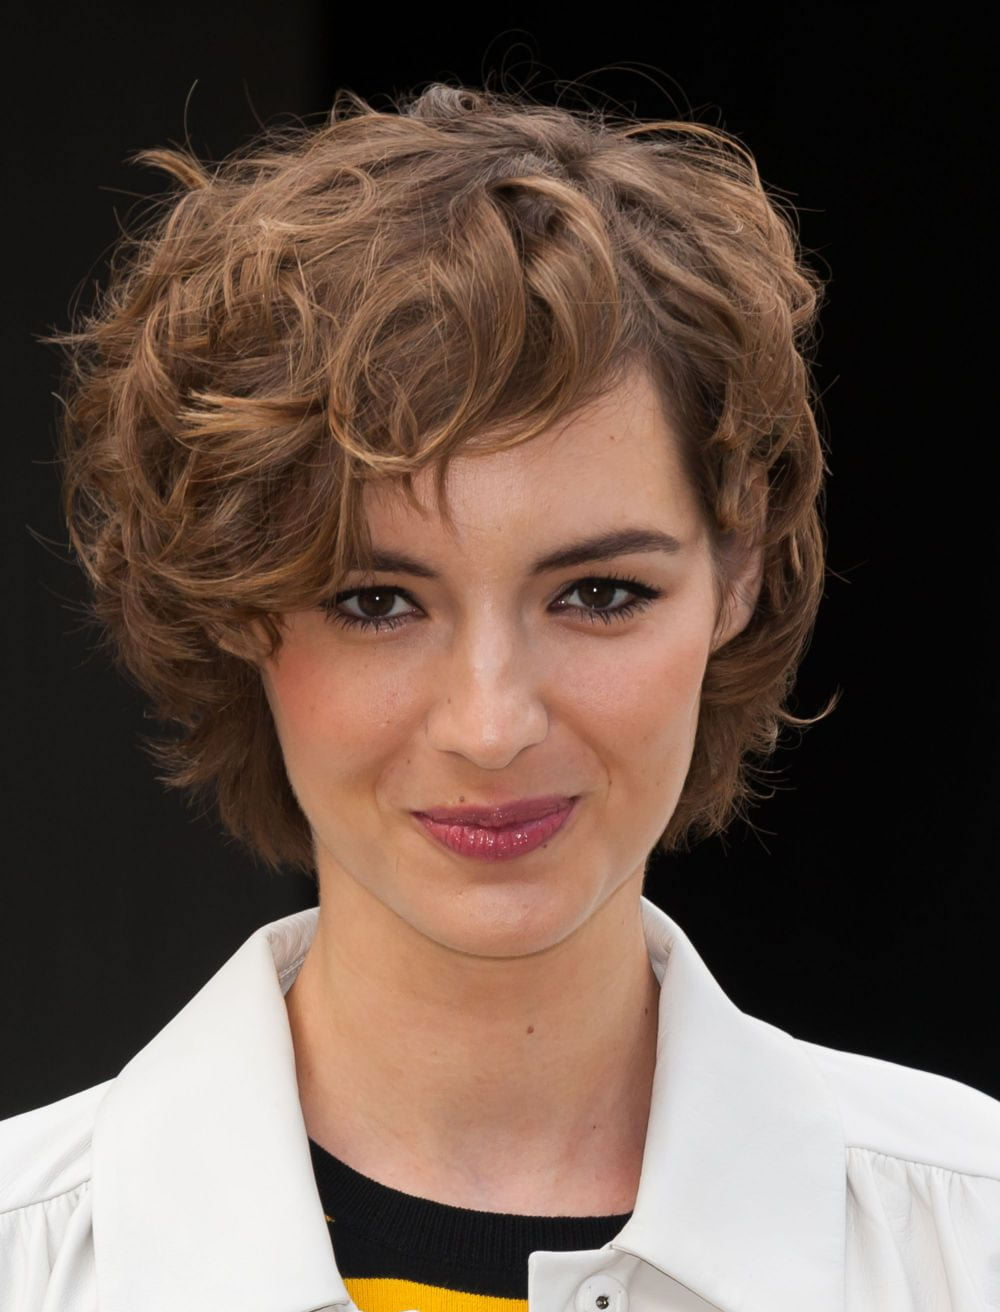 26 Long-Short Bob Haircuts for Fine Hair 2017-2018 - Page 2 - HAIRSTYLES